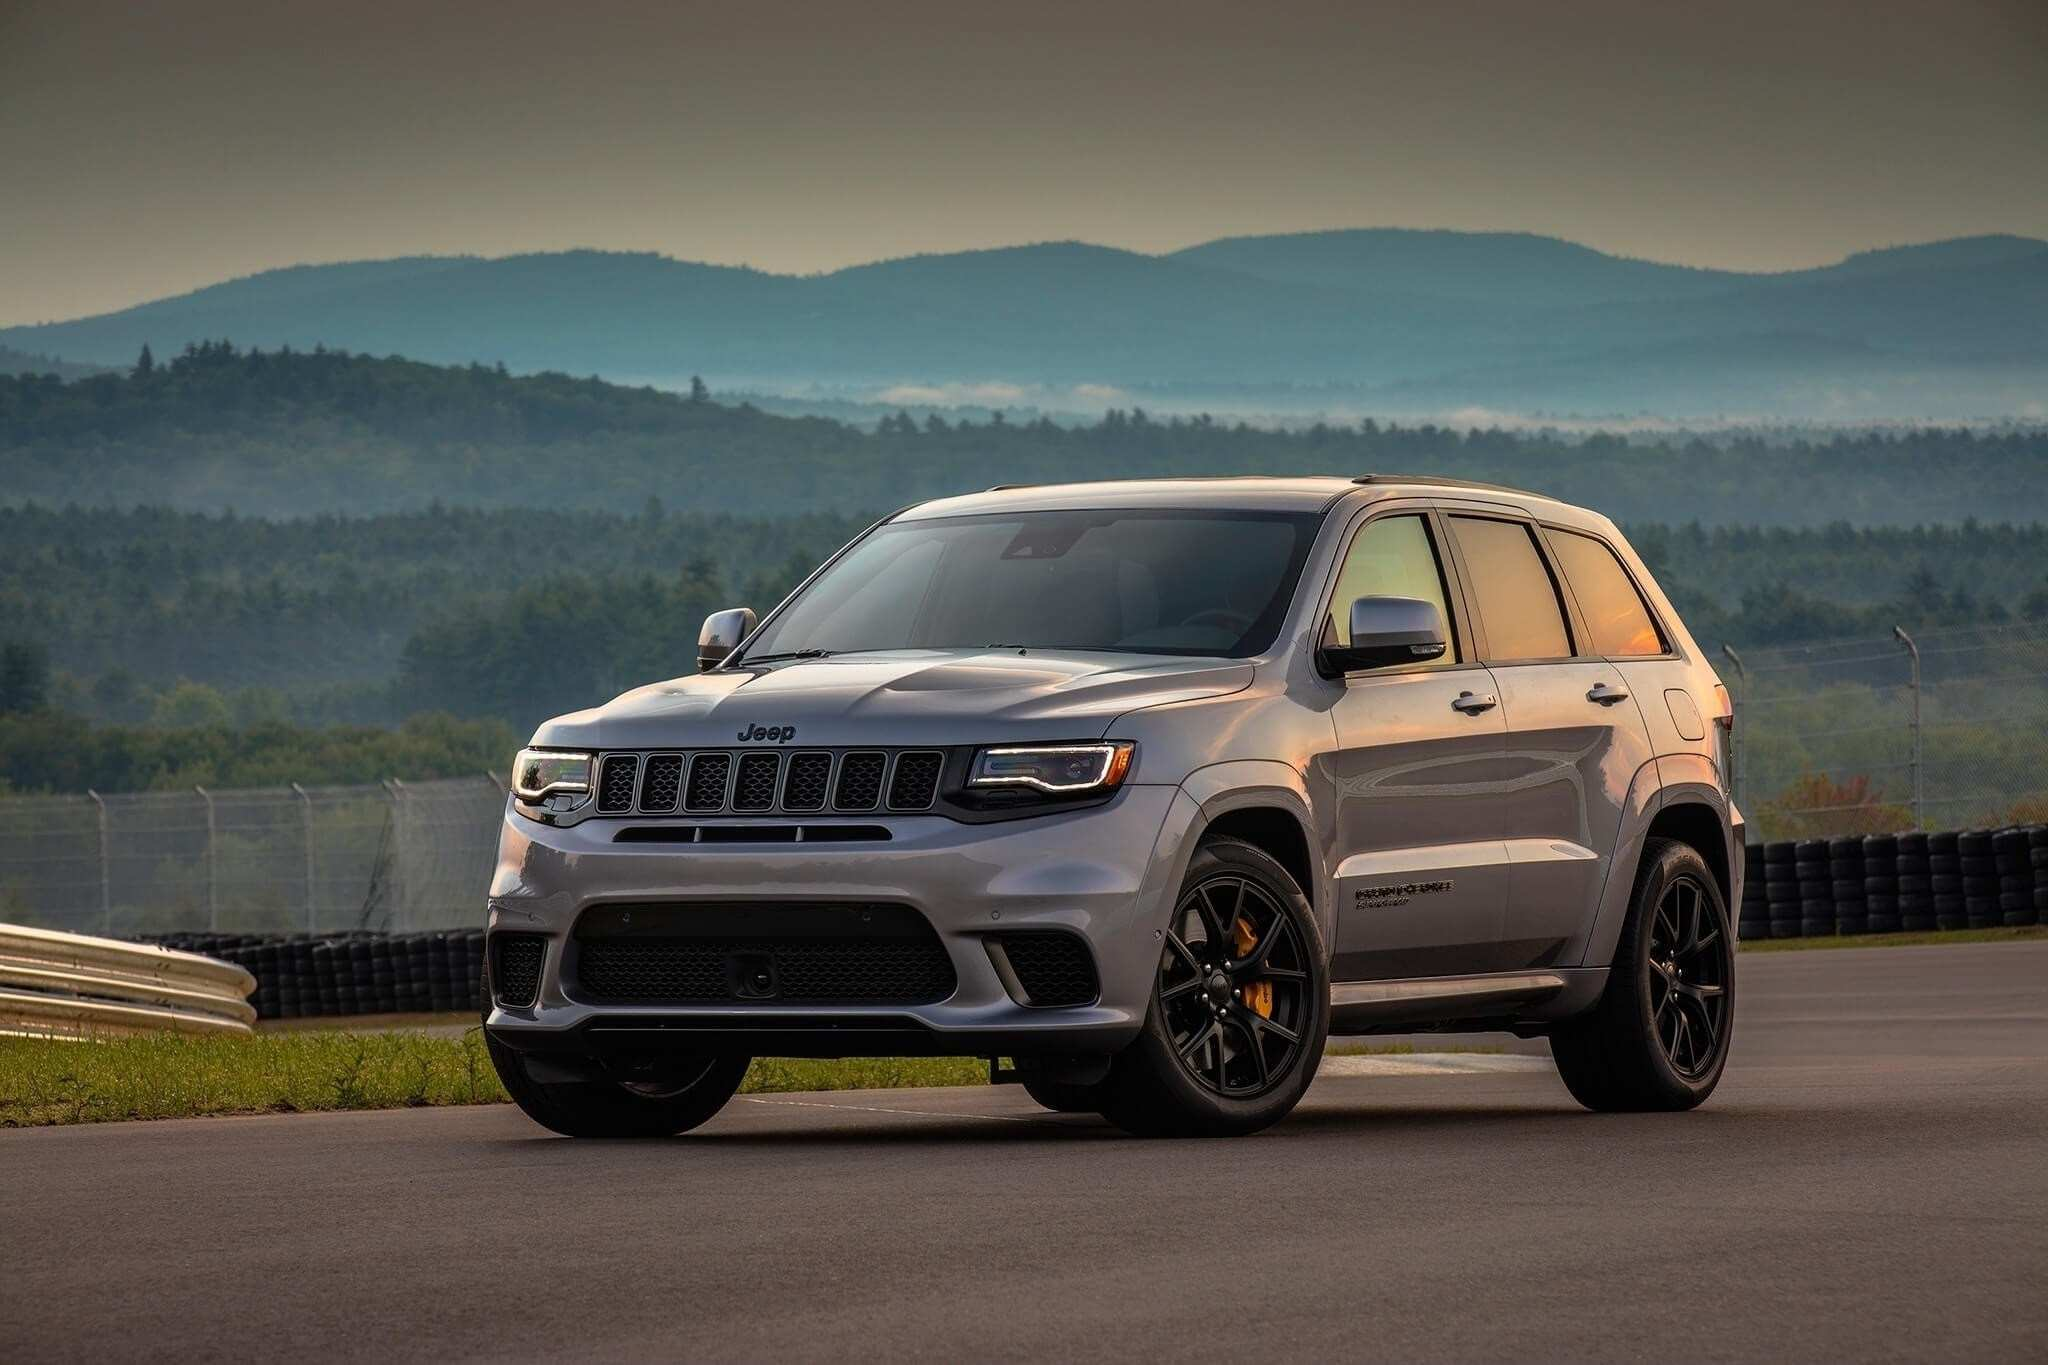 65 A 2019 Jeep 3 0 Diesel Price And Review